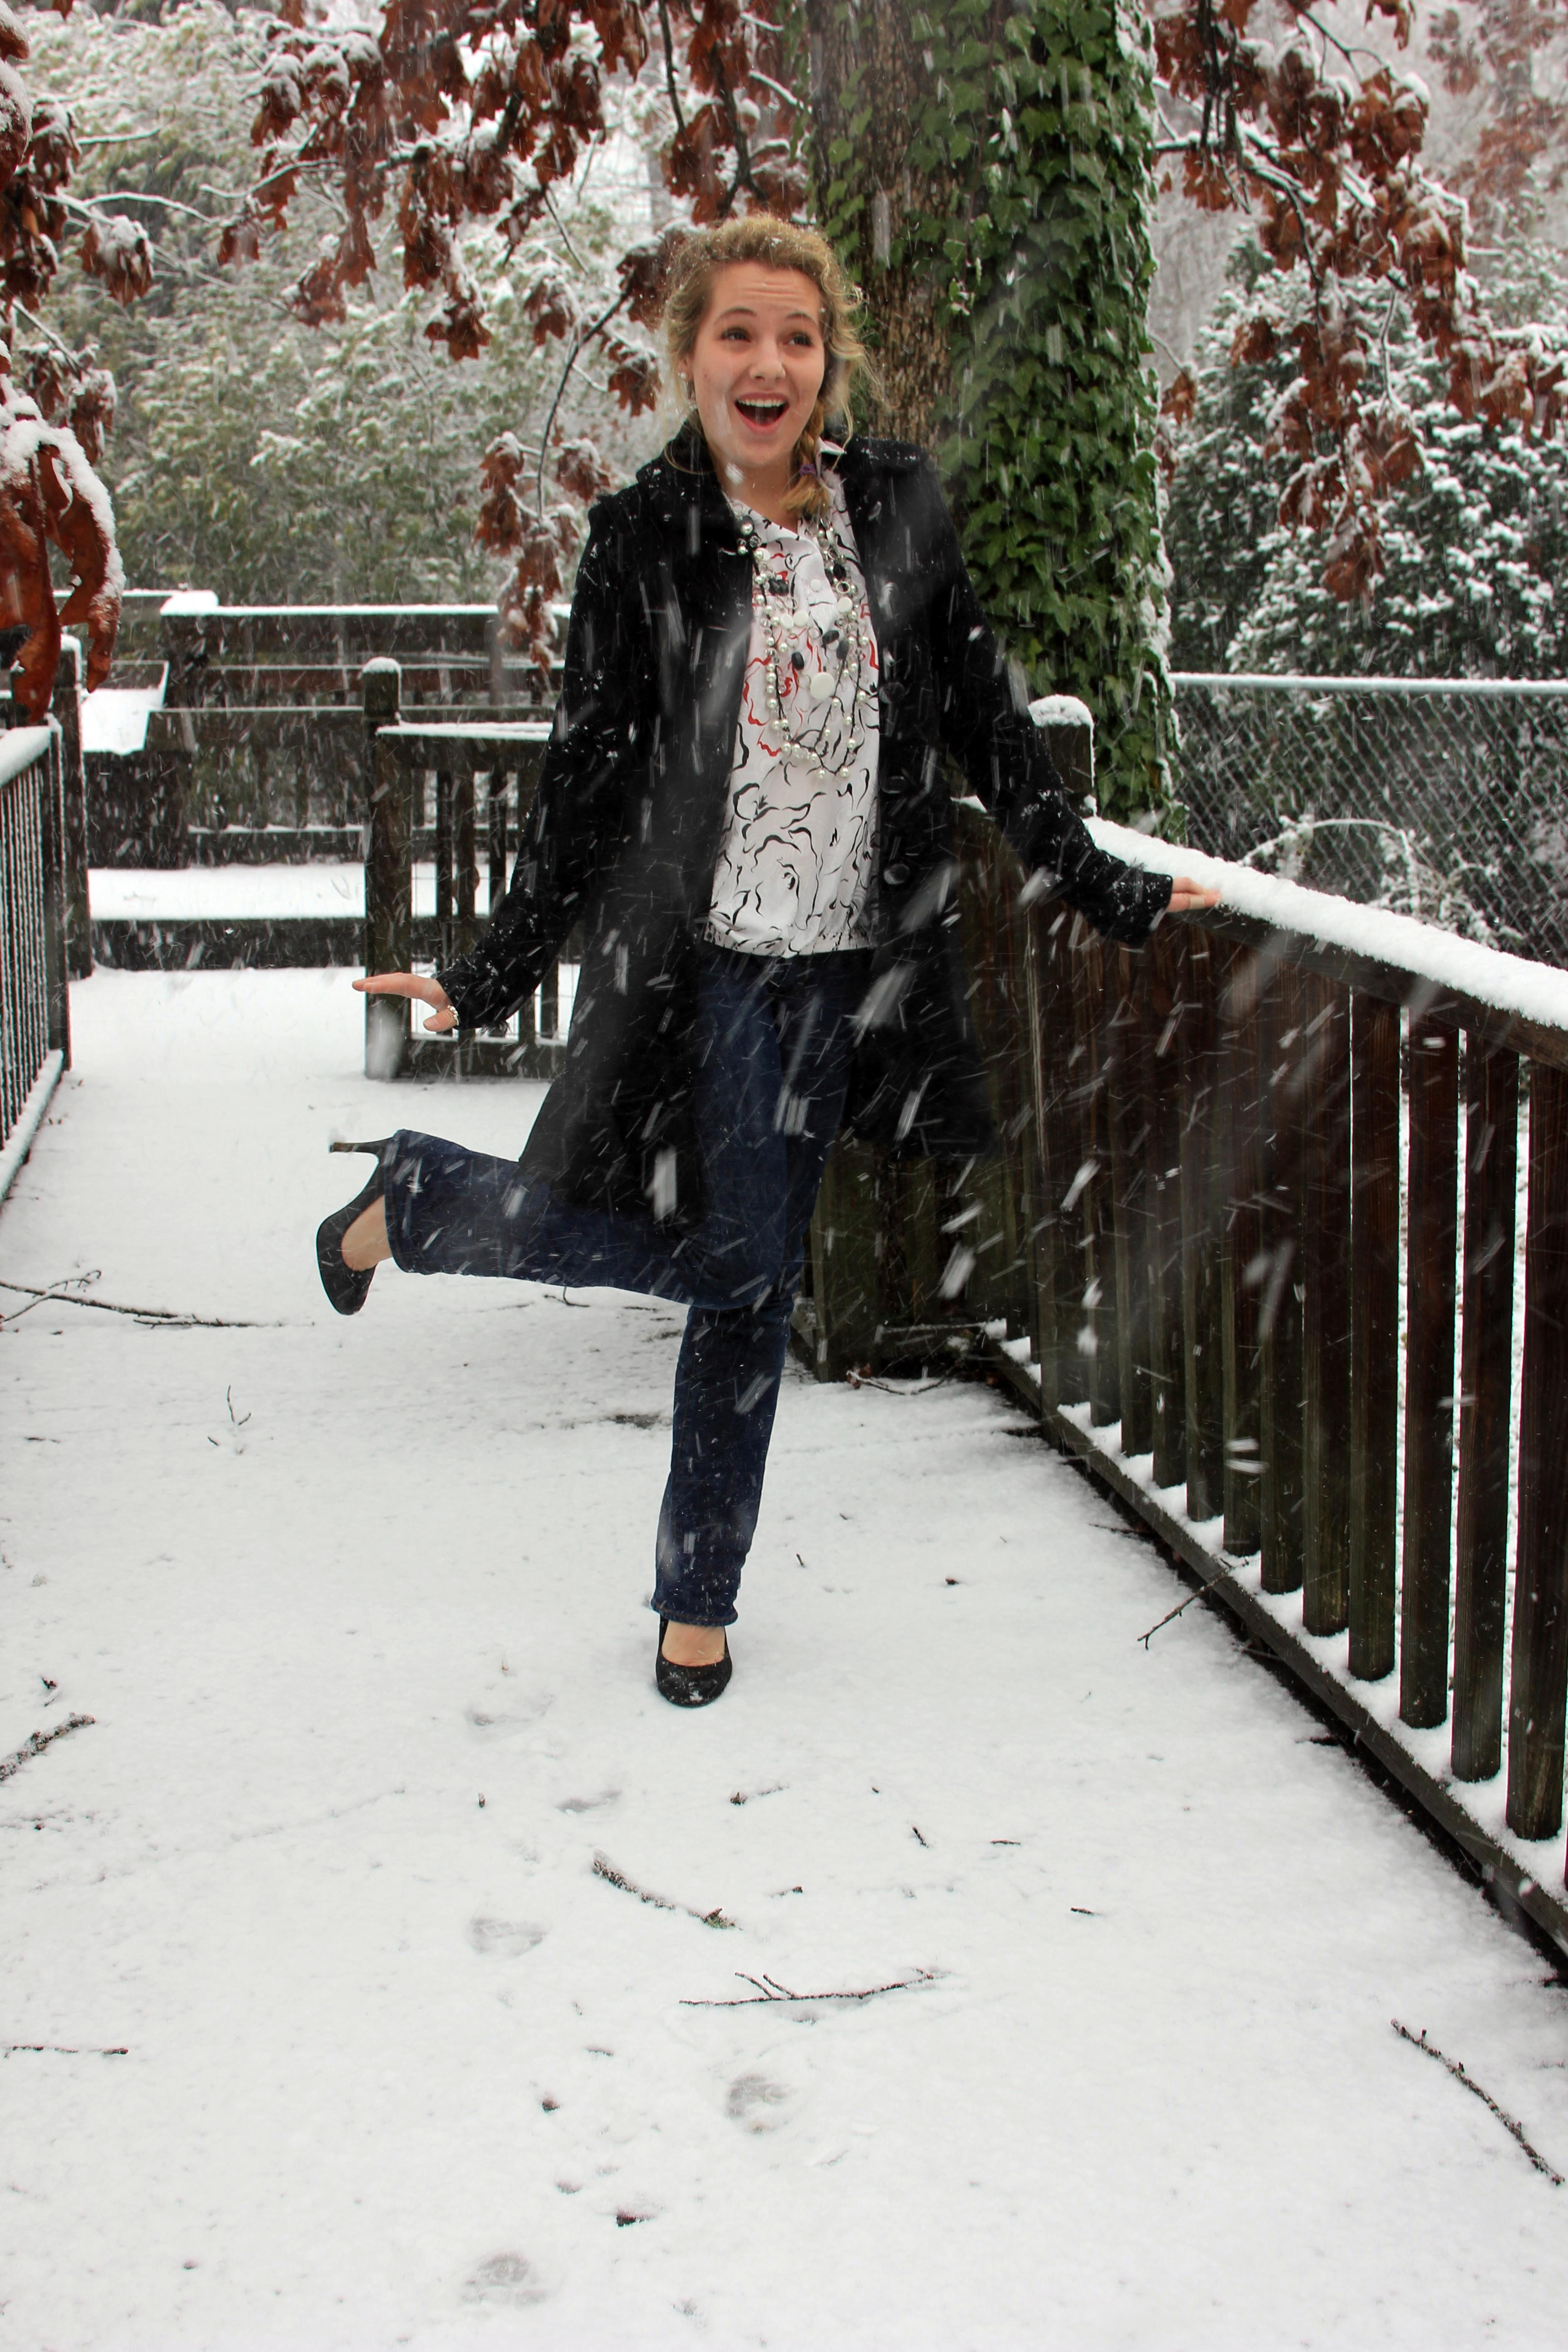 simply stylish in southern snow